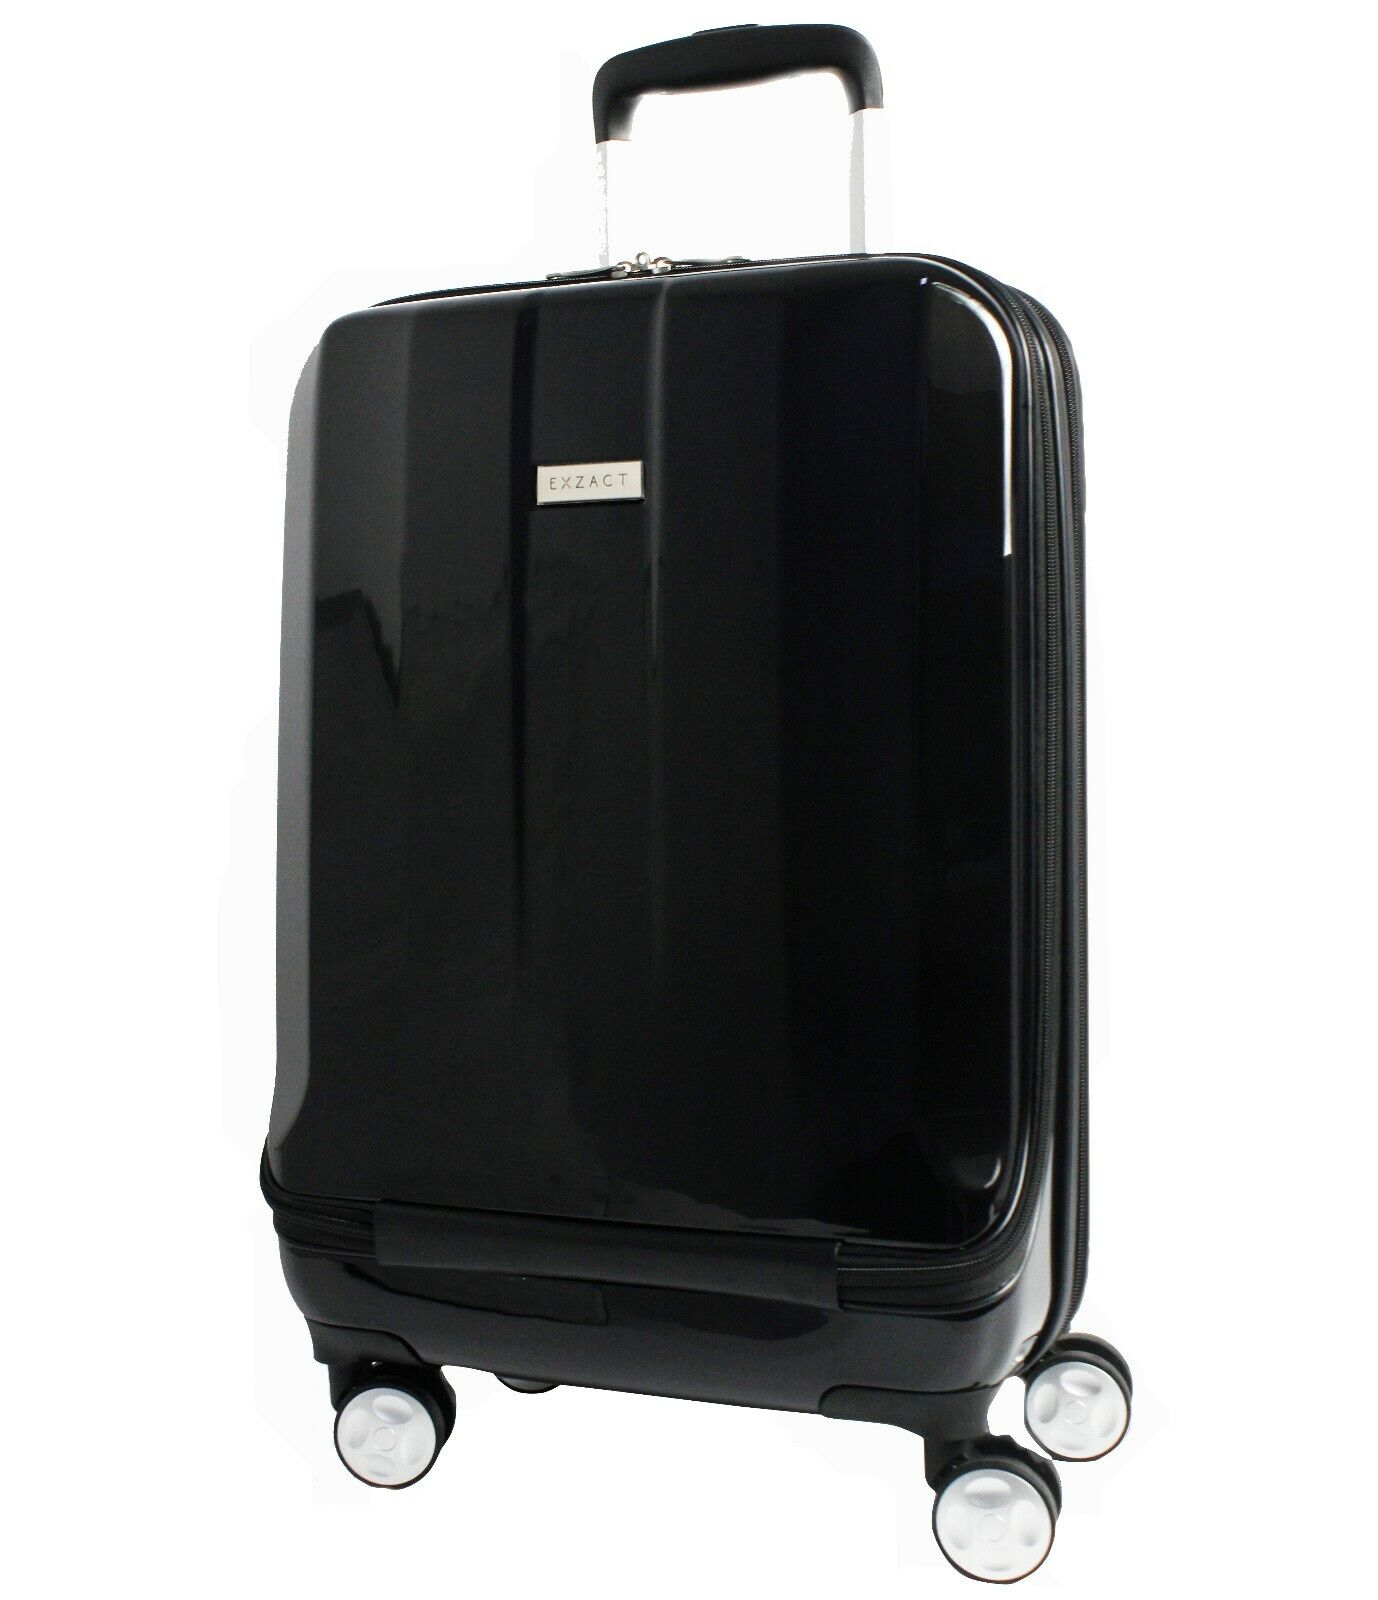 Exzact Cabin Luggage/Carry-on Bag 20 / Hard Shell / Front Pocket Laptop Black - $24.99